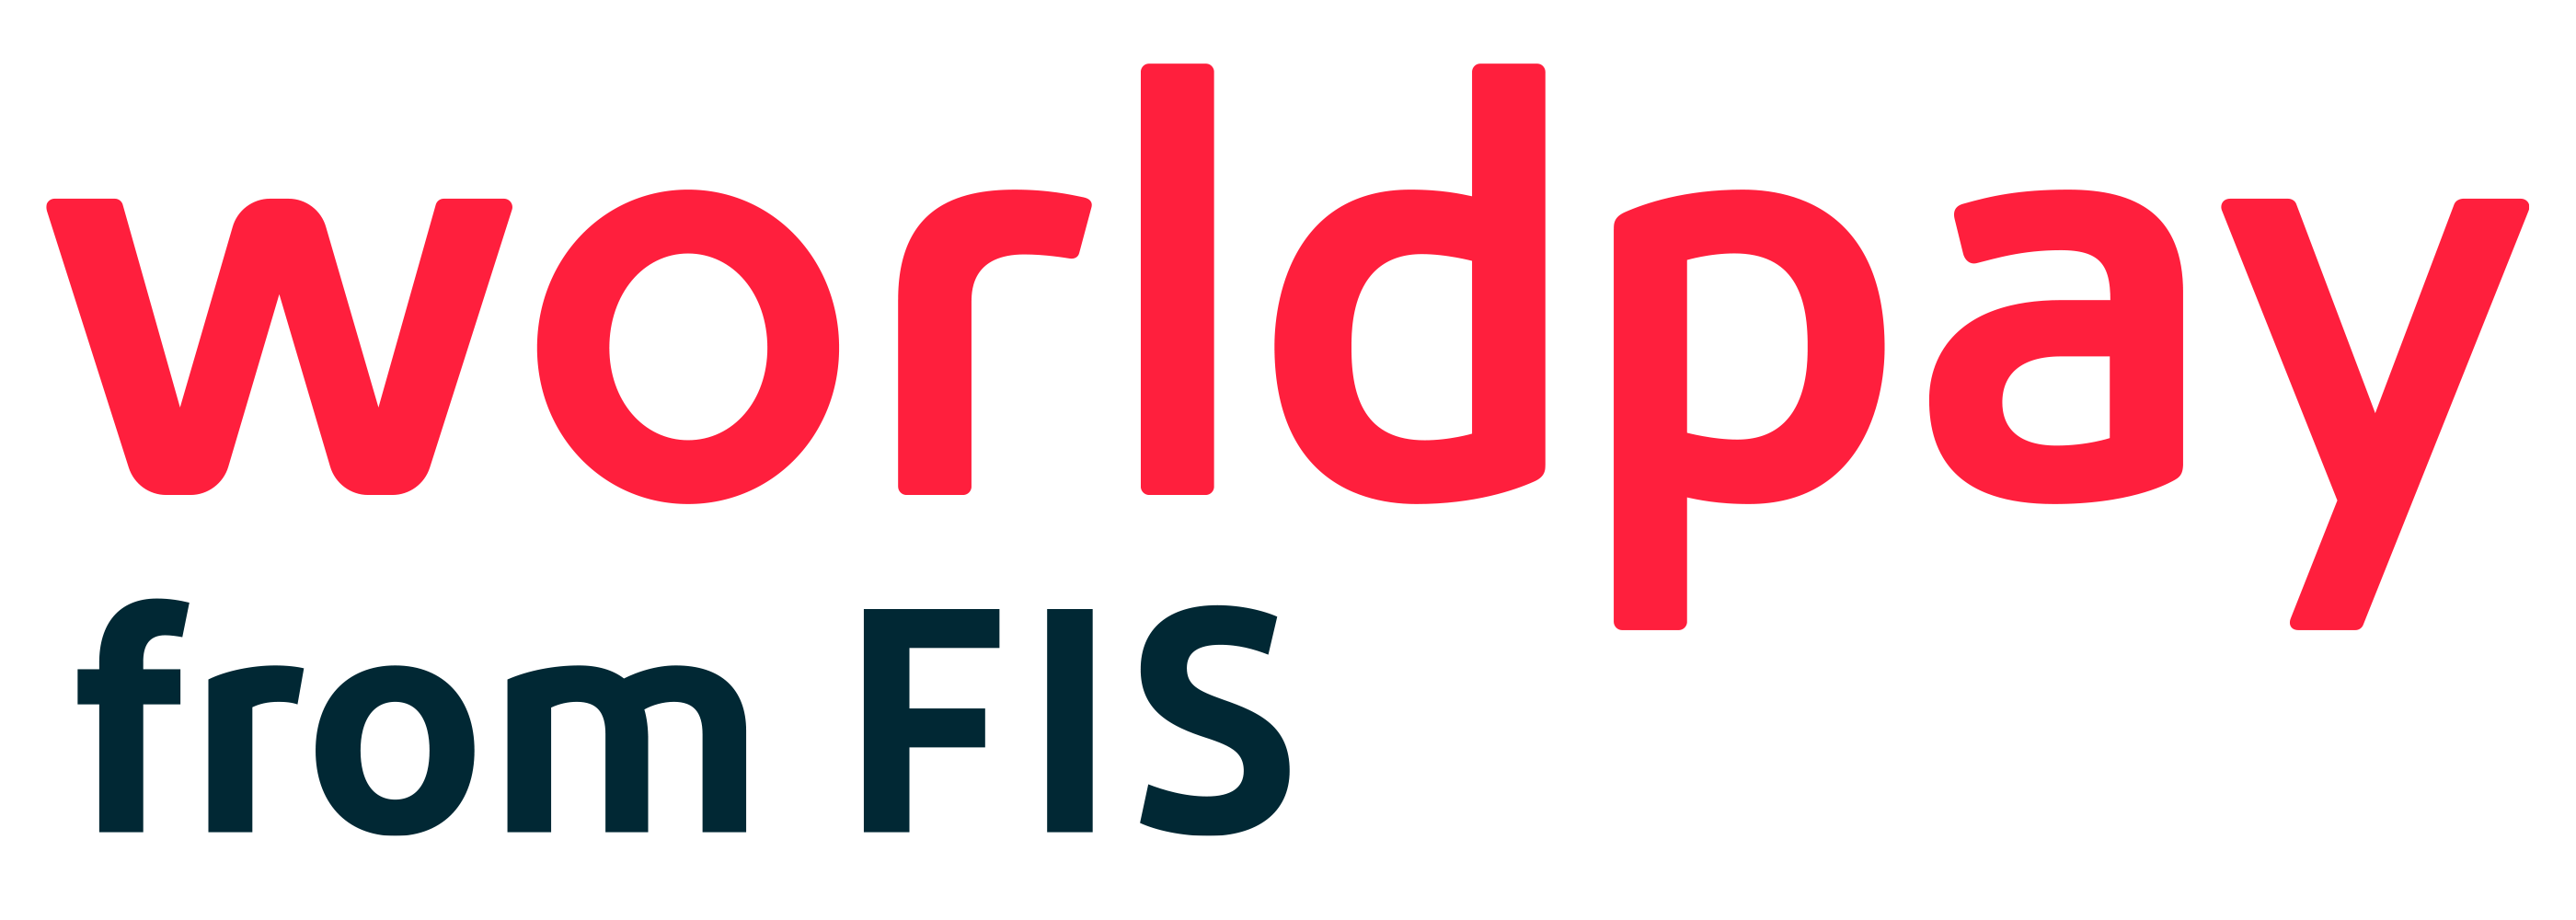 alt='Worldpay from FIS'  Title='Worldpay from FIS'